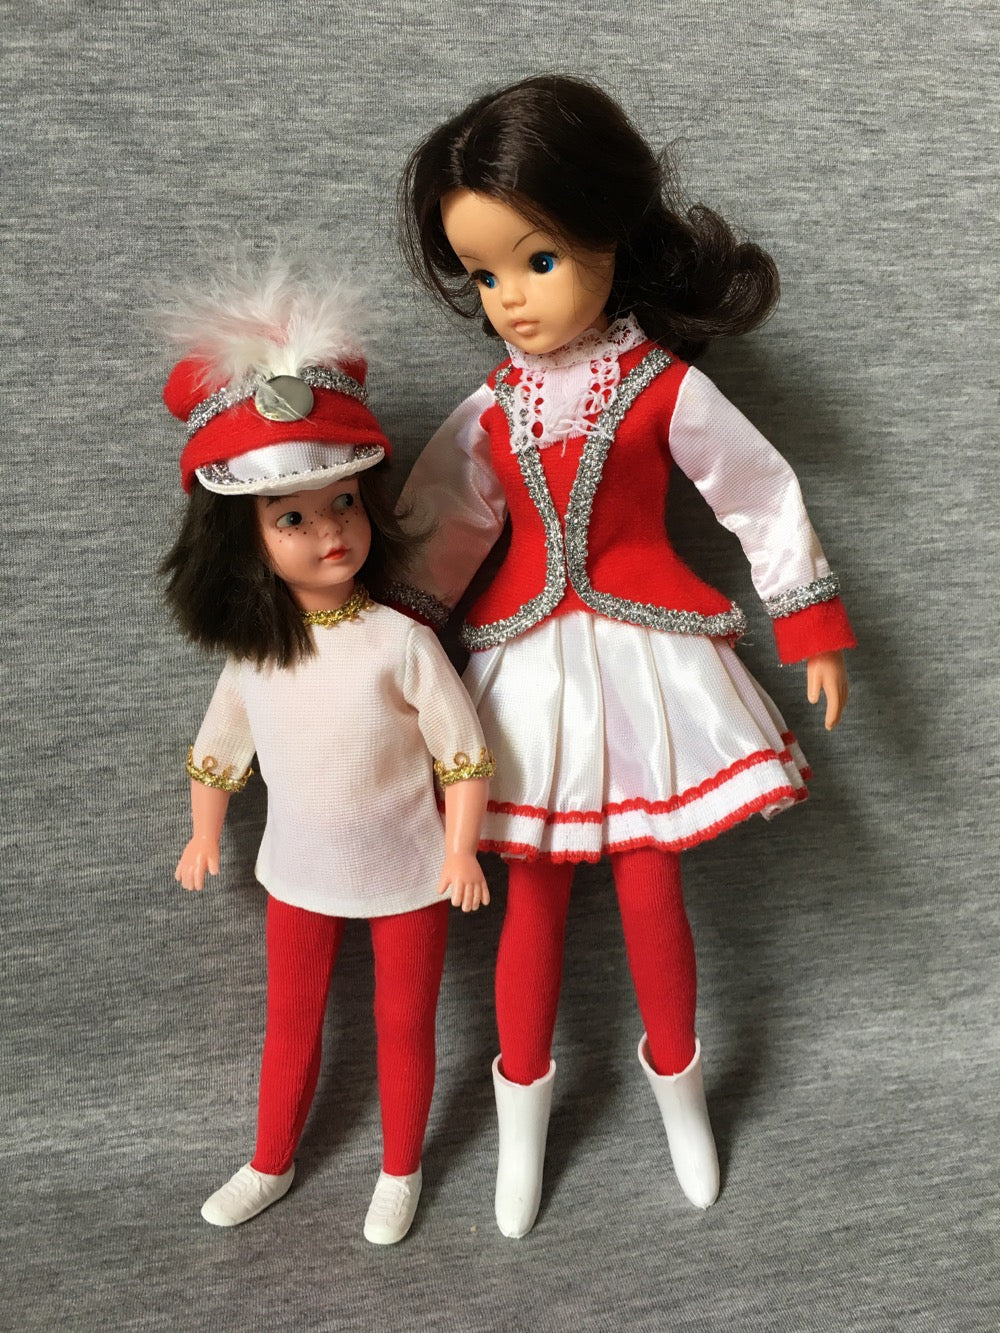 Patch and Sindy in Faerie Glen majorette outfits